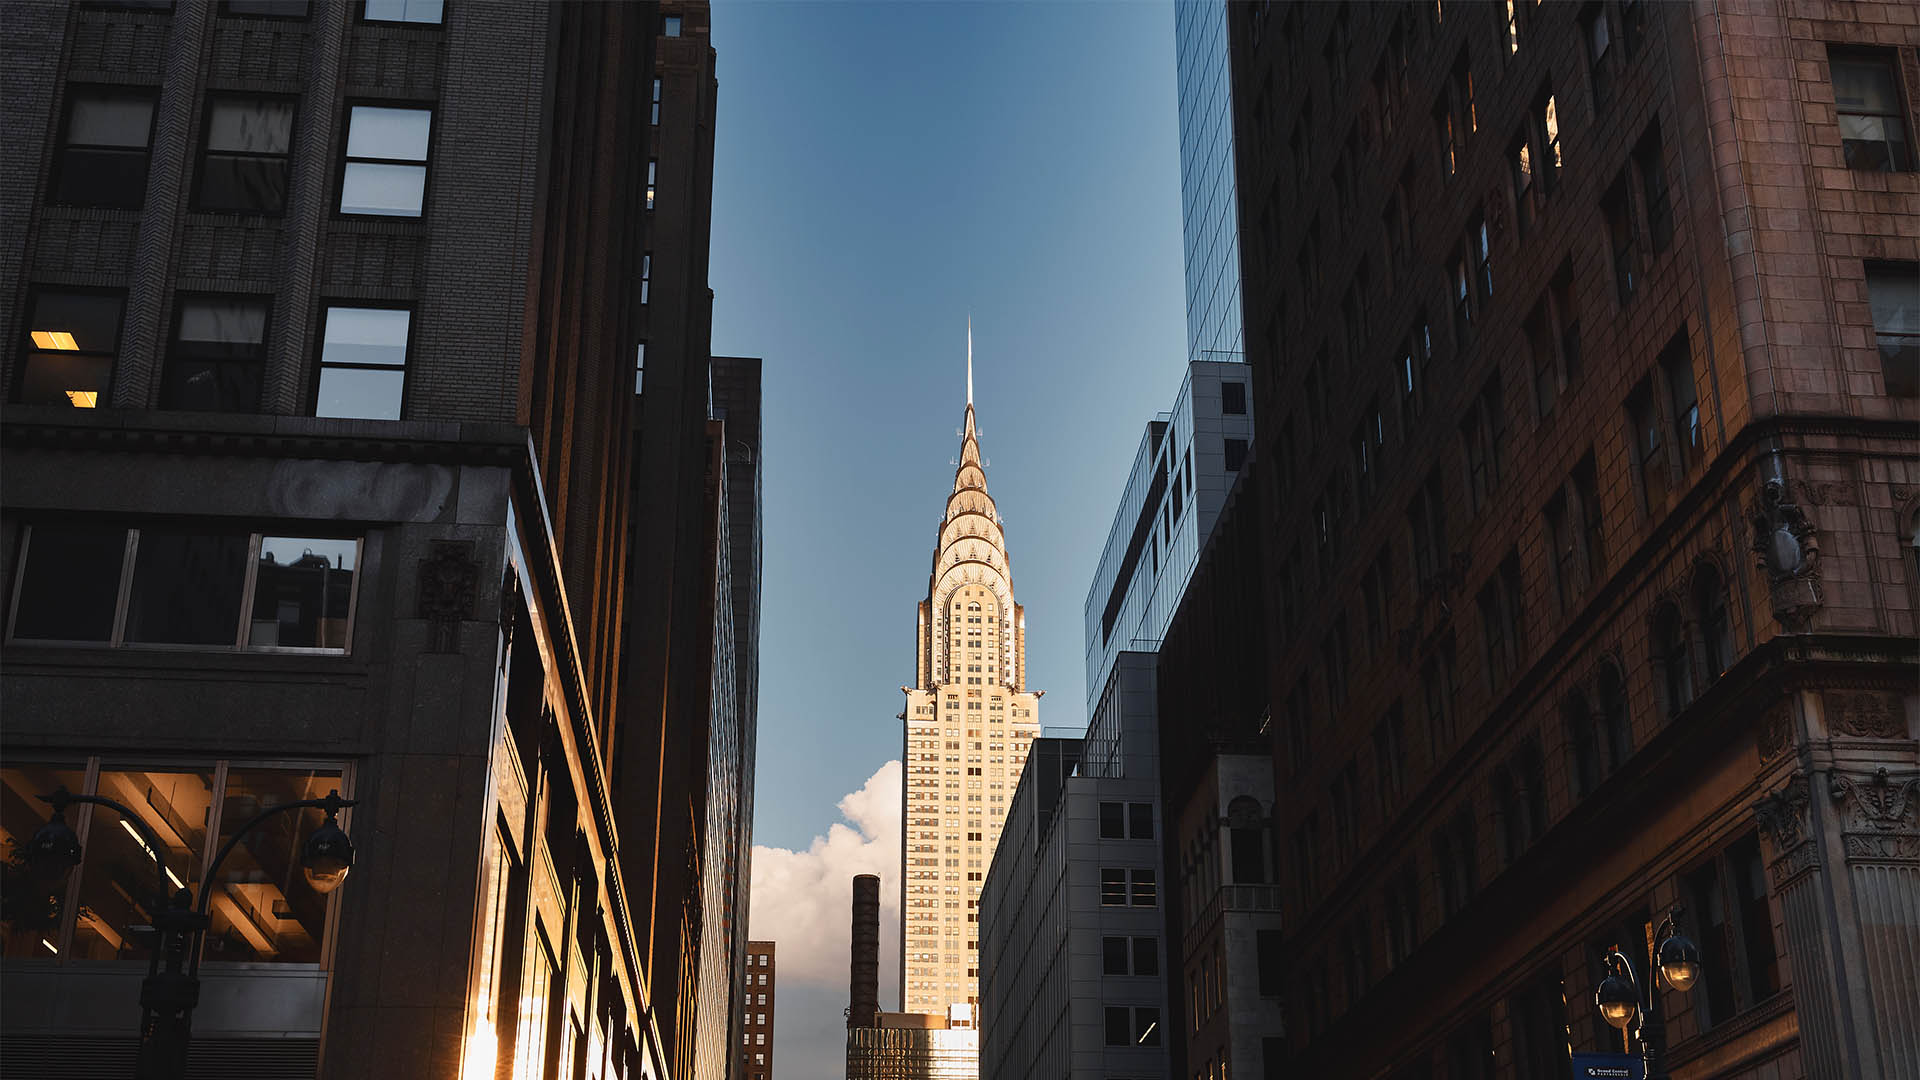 Peregrine Communications moves to Chrysler building